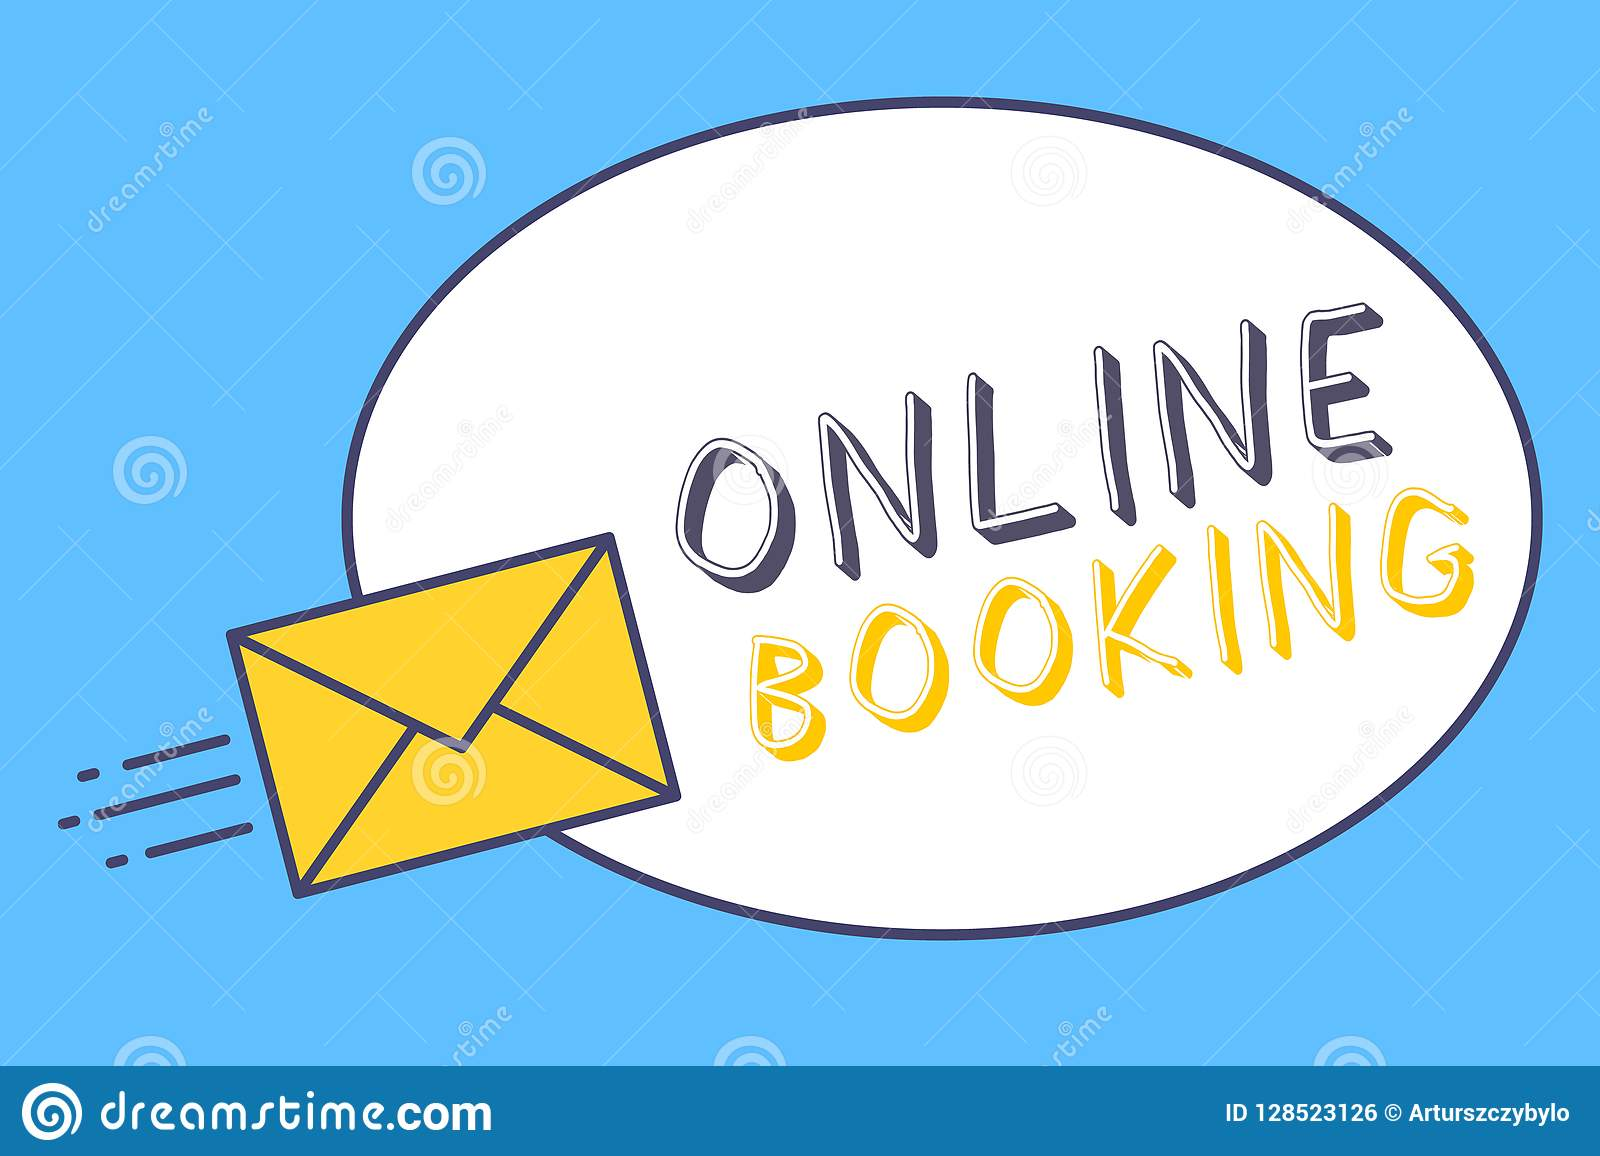 Handwriting Text Online Booking Concept Meaning Reservation Through Internet Hotel Accommodation Plane Ticket Stock Illustration Illustration Of Guide Airplane 128523126